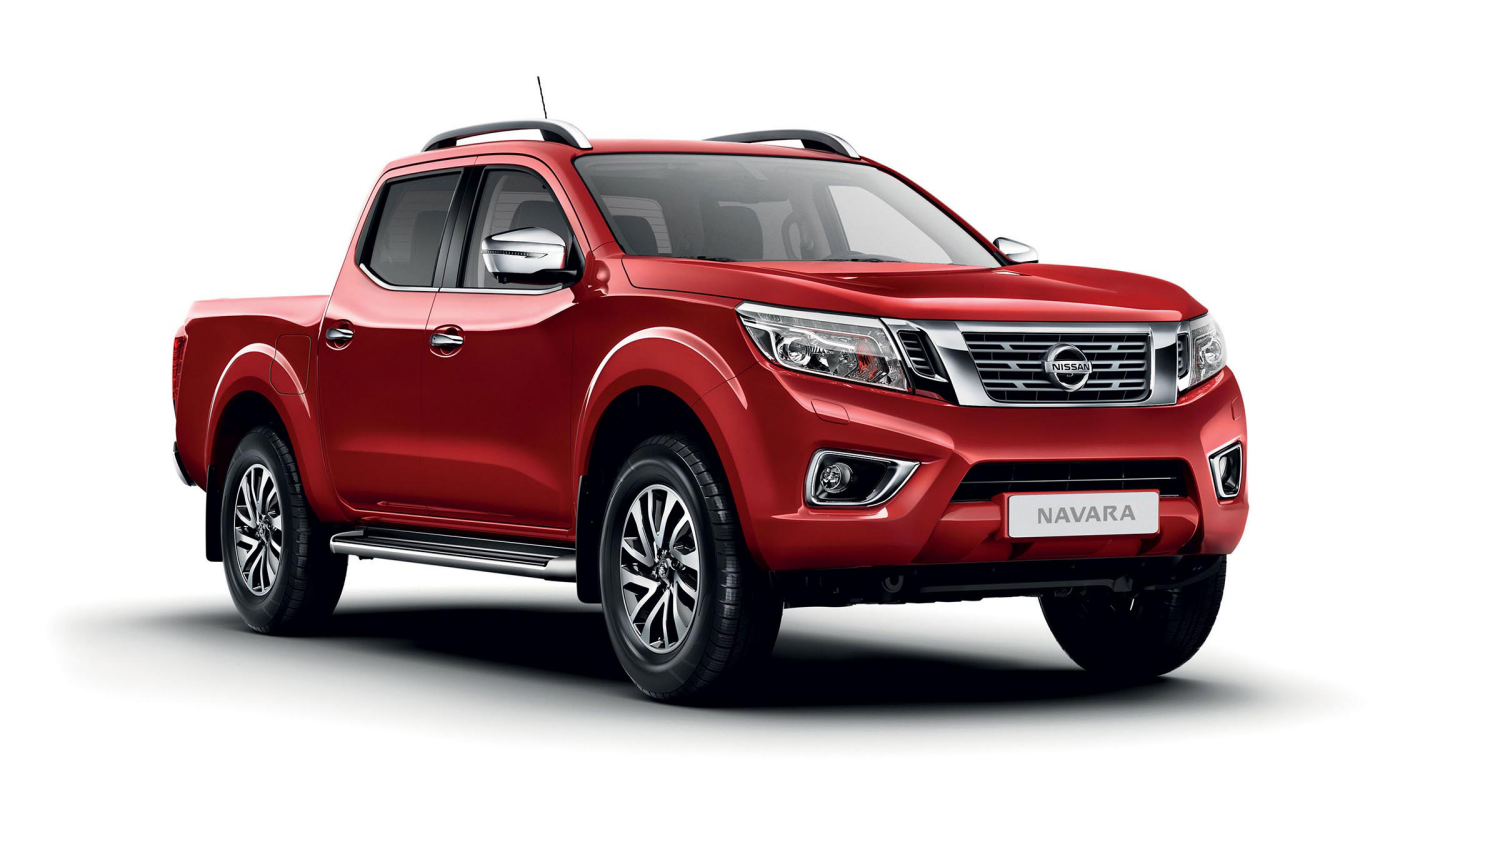 prix caract ristiques nissan navara 4x4 nissan. Black Bedroom Furniture Sets. Home Design Ideas